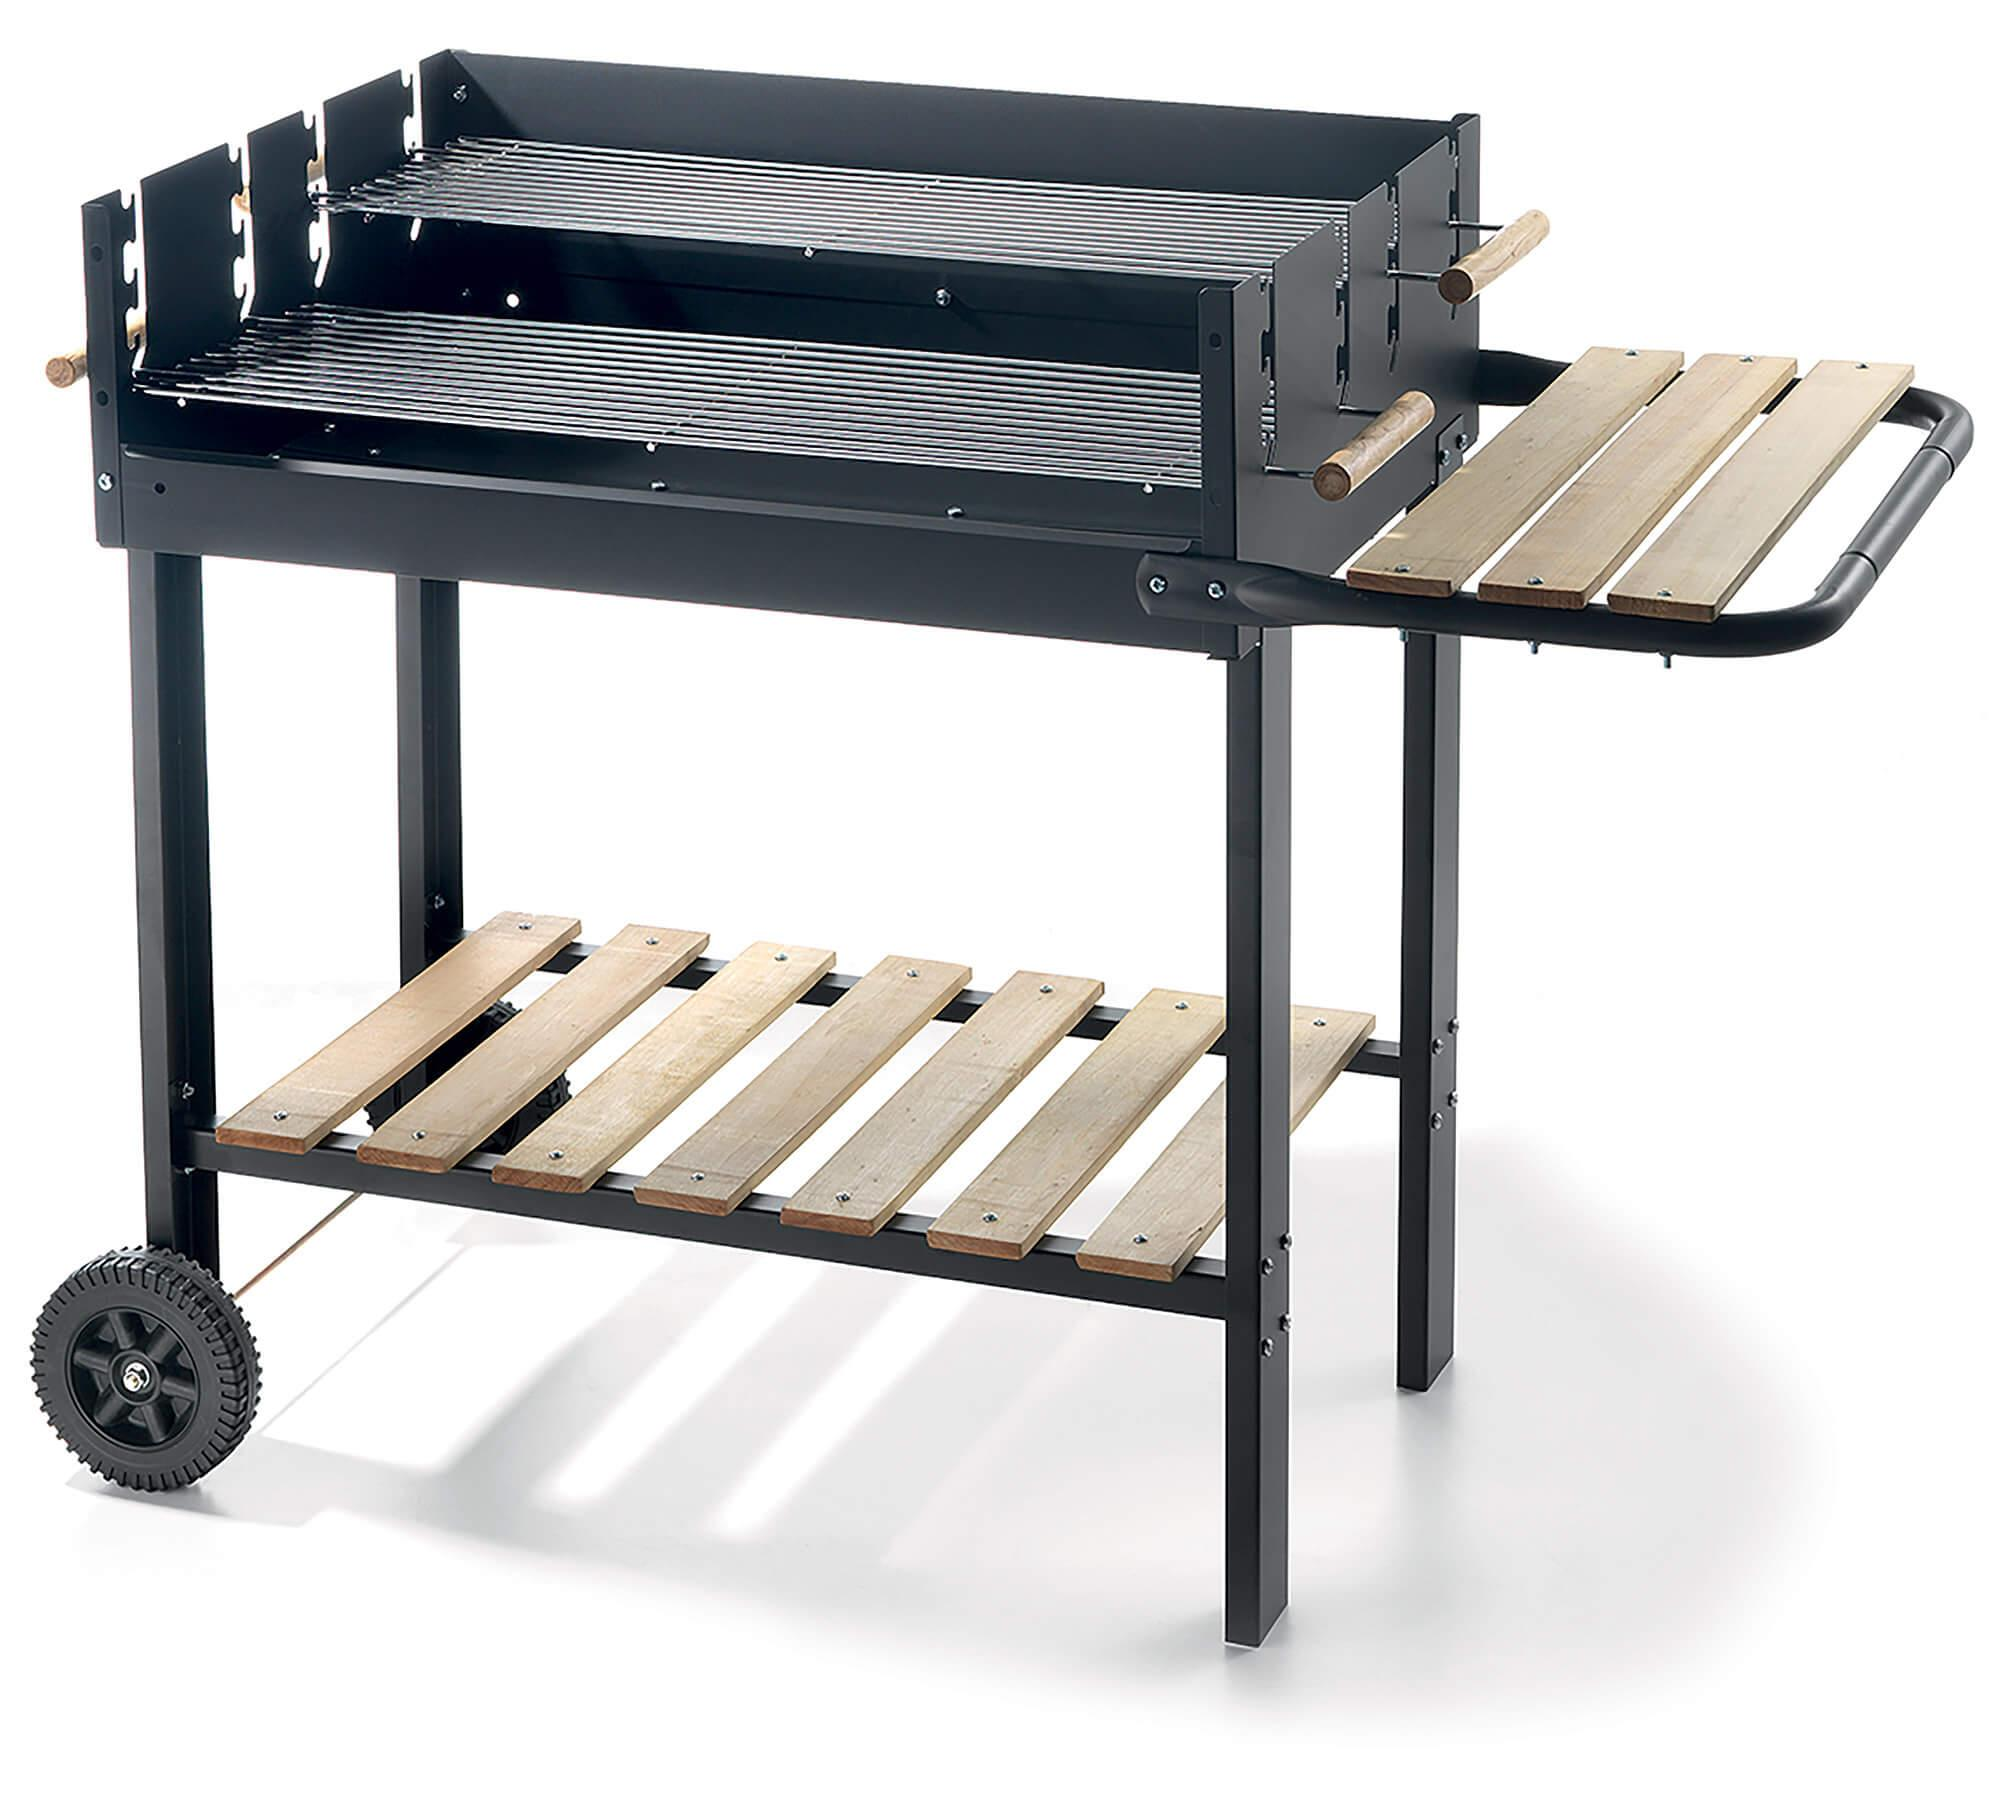 Image of Barbecue a Carbone Carbonella in Acciaio Ompagrill 70-47 Eco